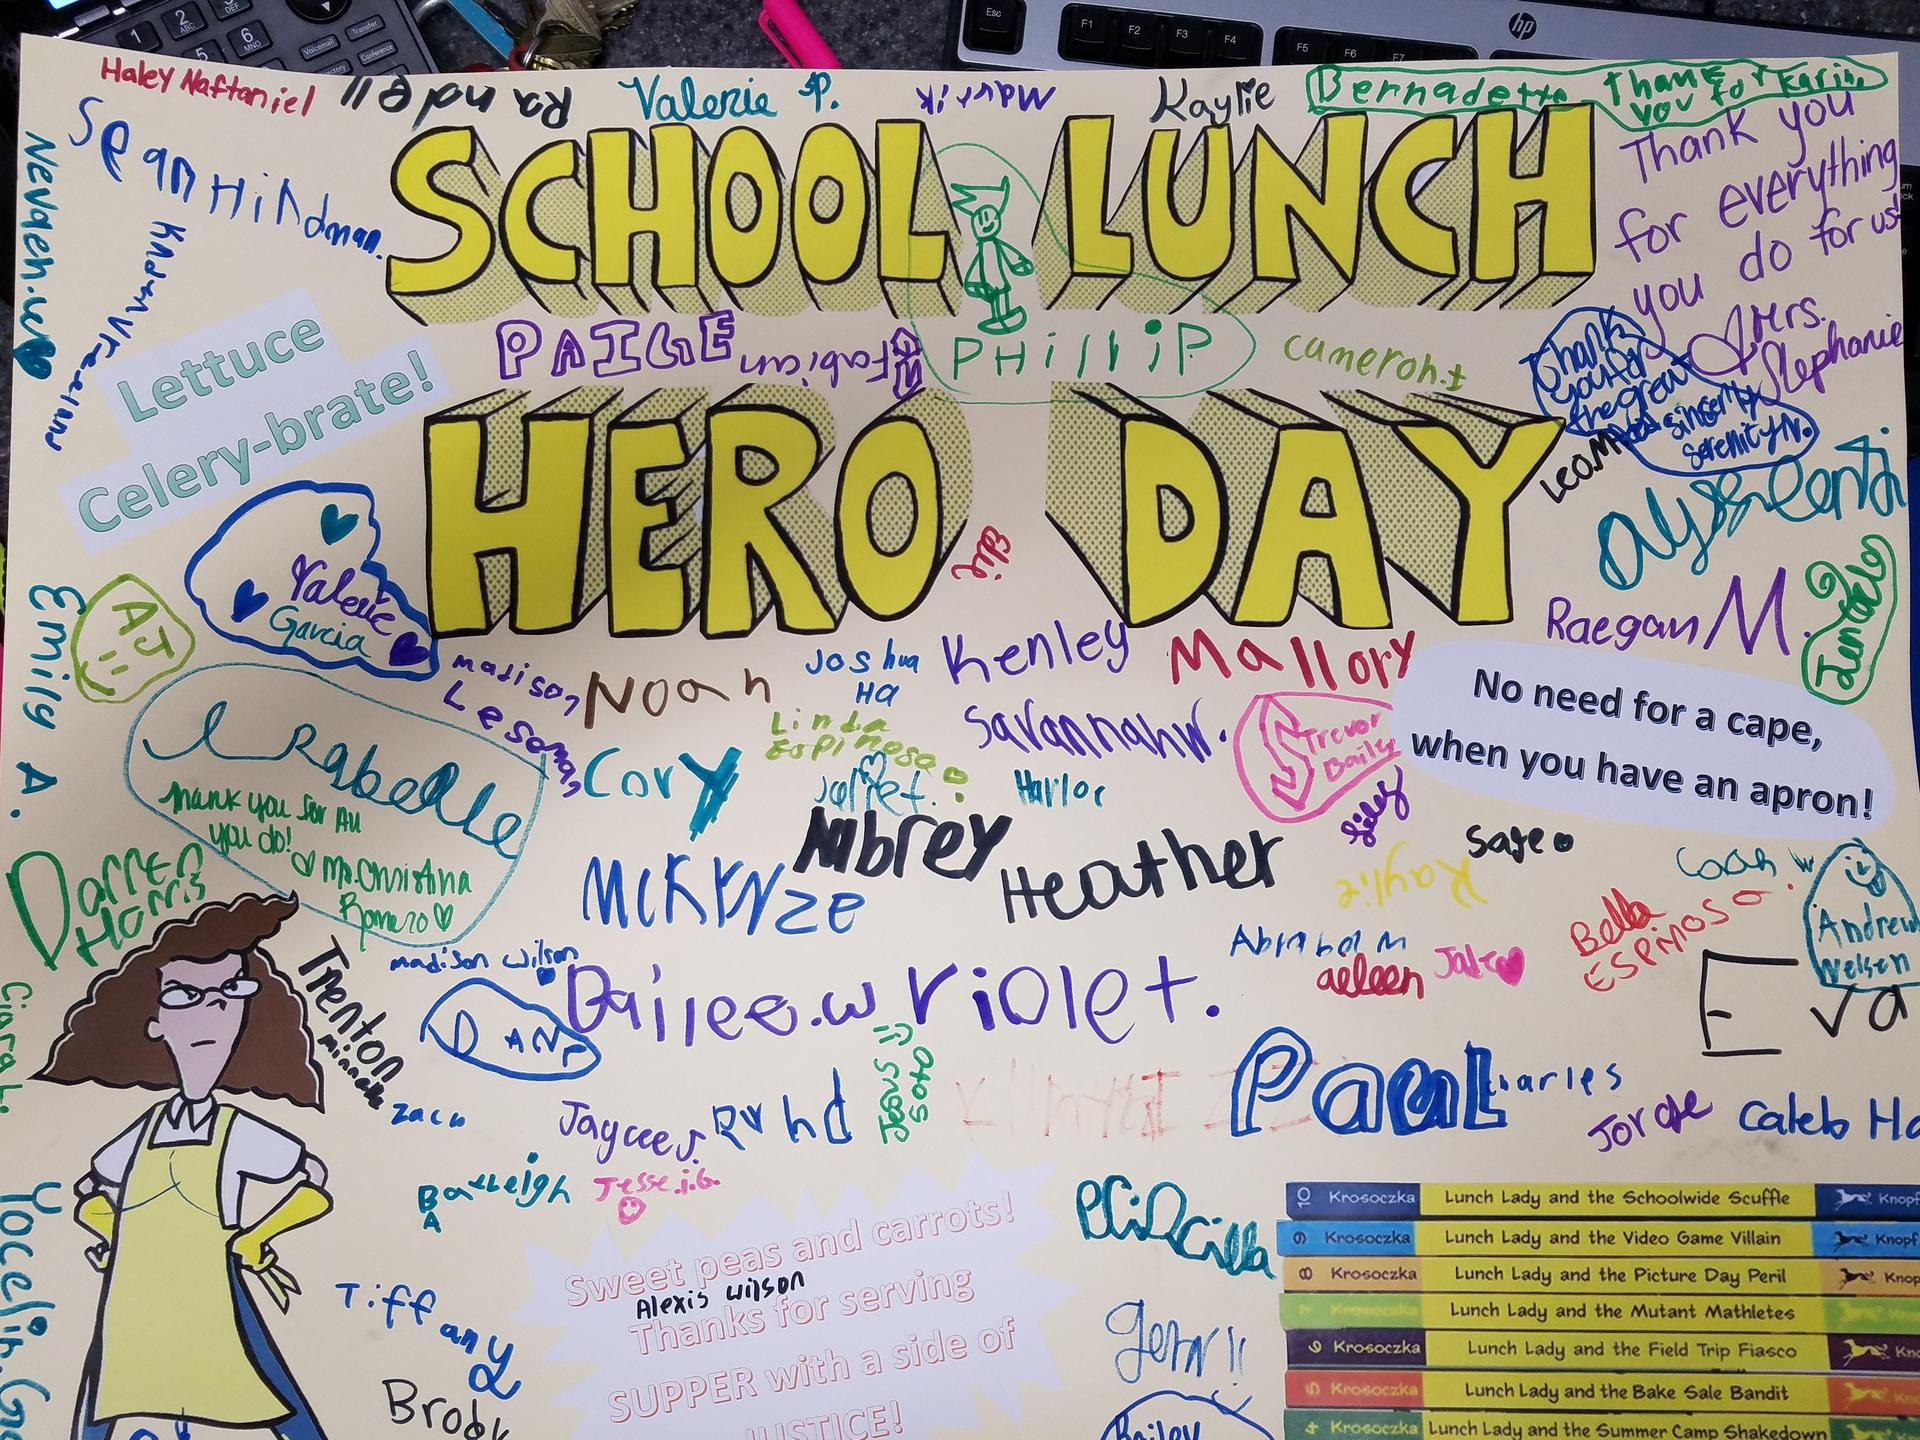 Lunch Hero Day